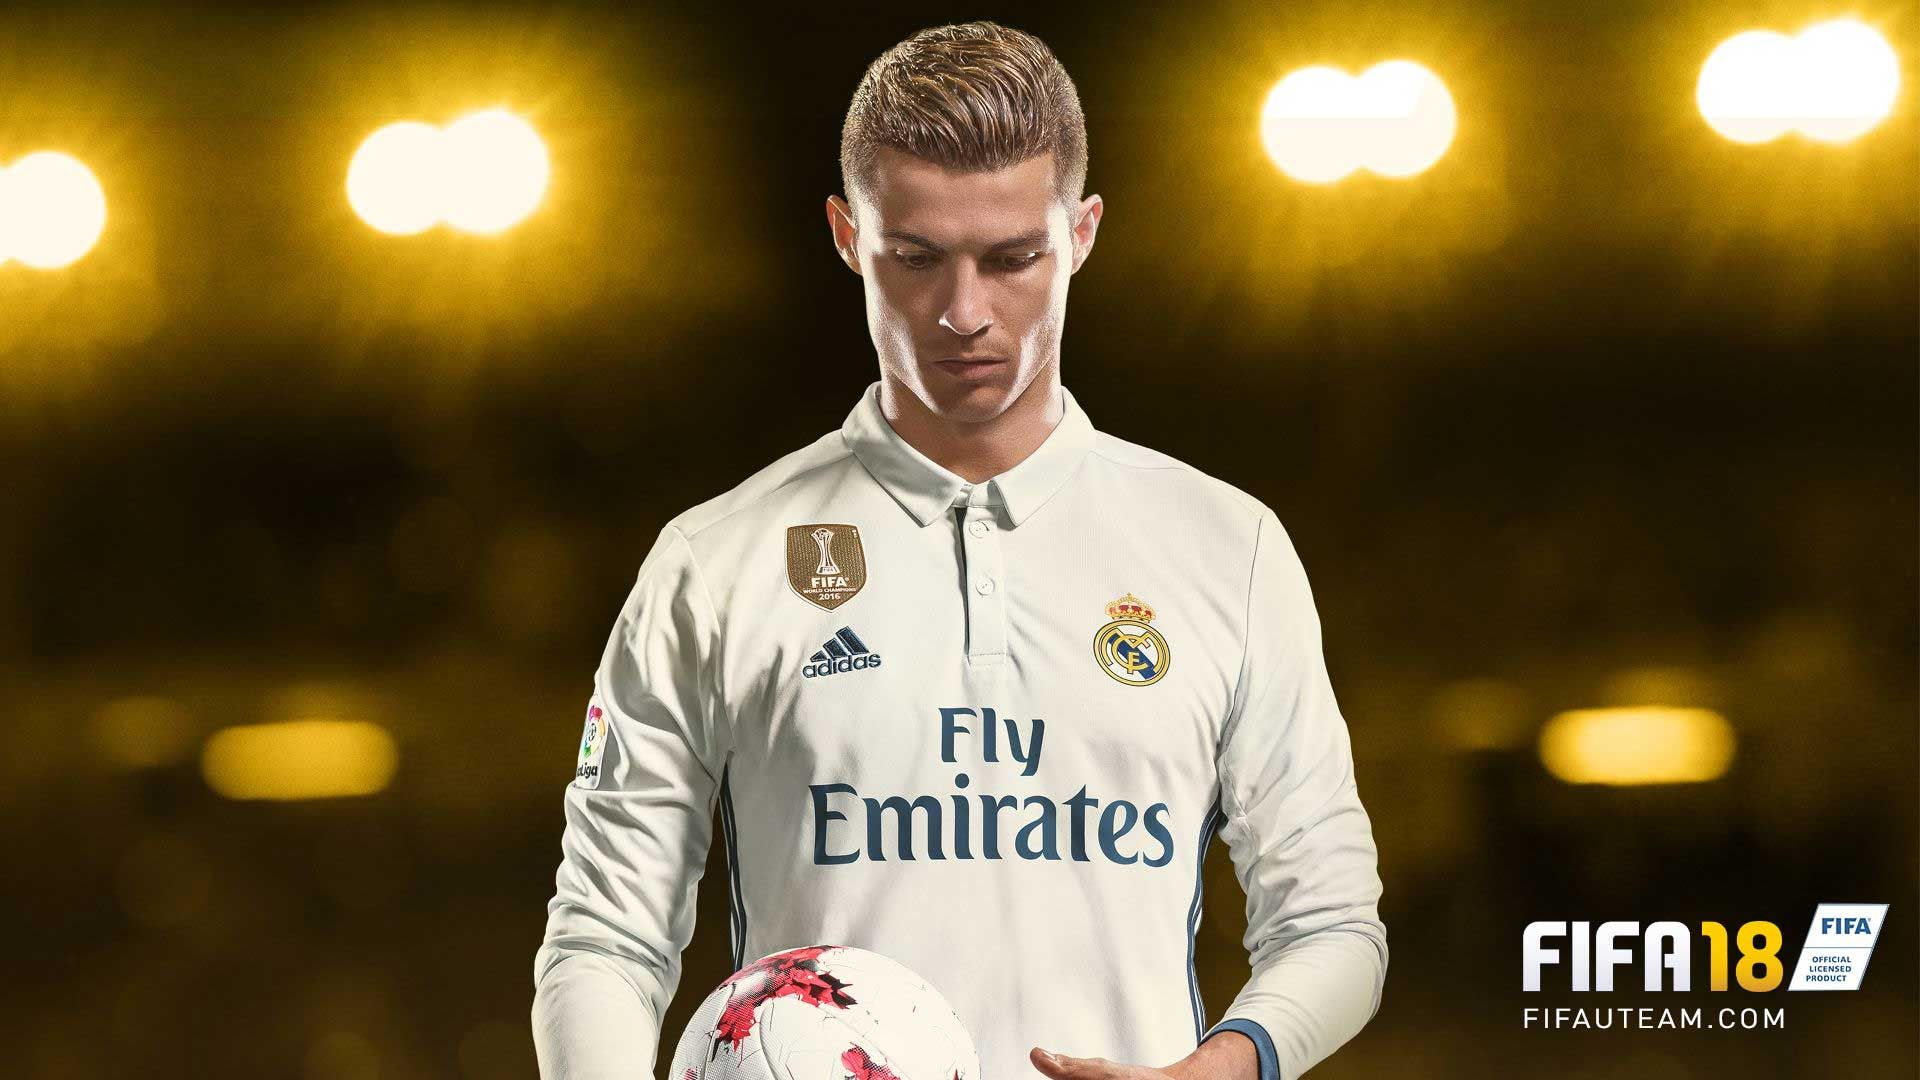 fifa 2018 cristiano ronaldo wallpaper - 2018 wallpapers hd